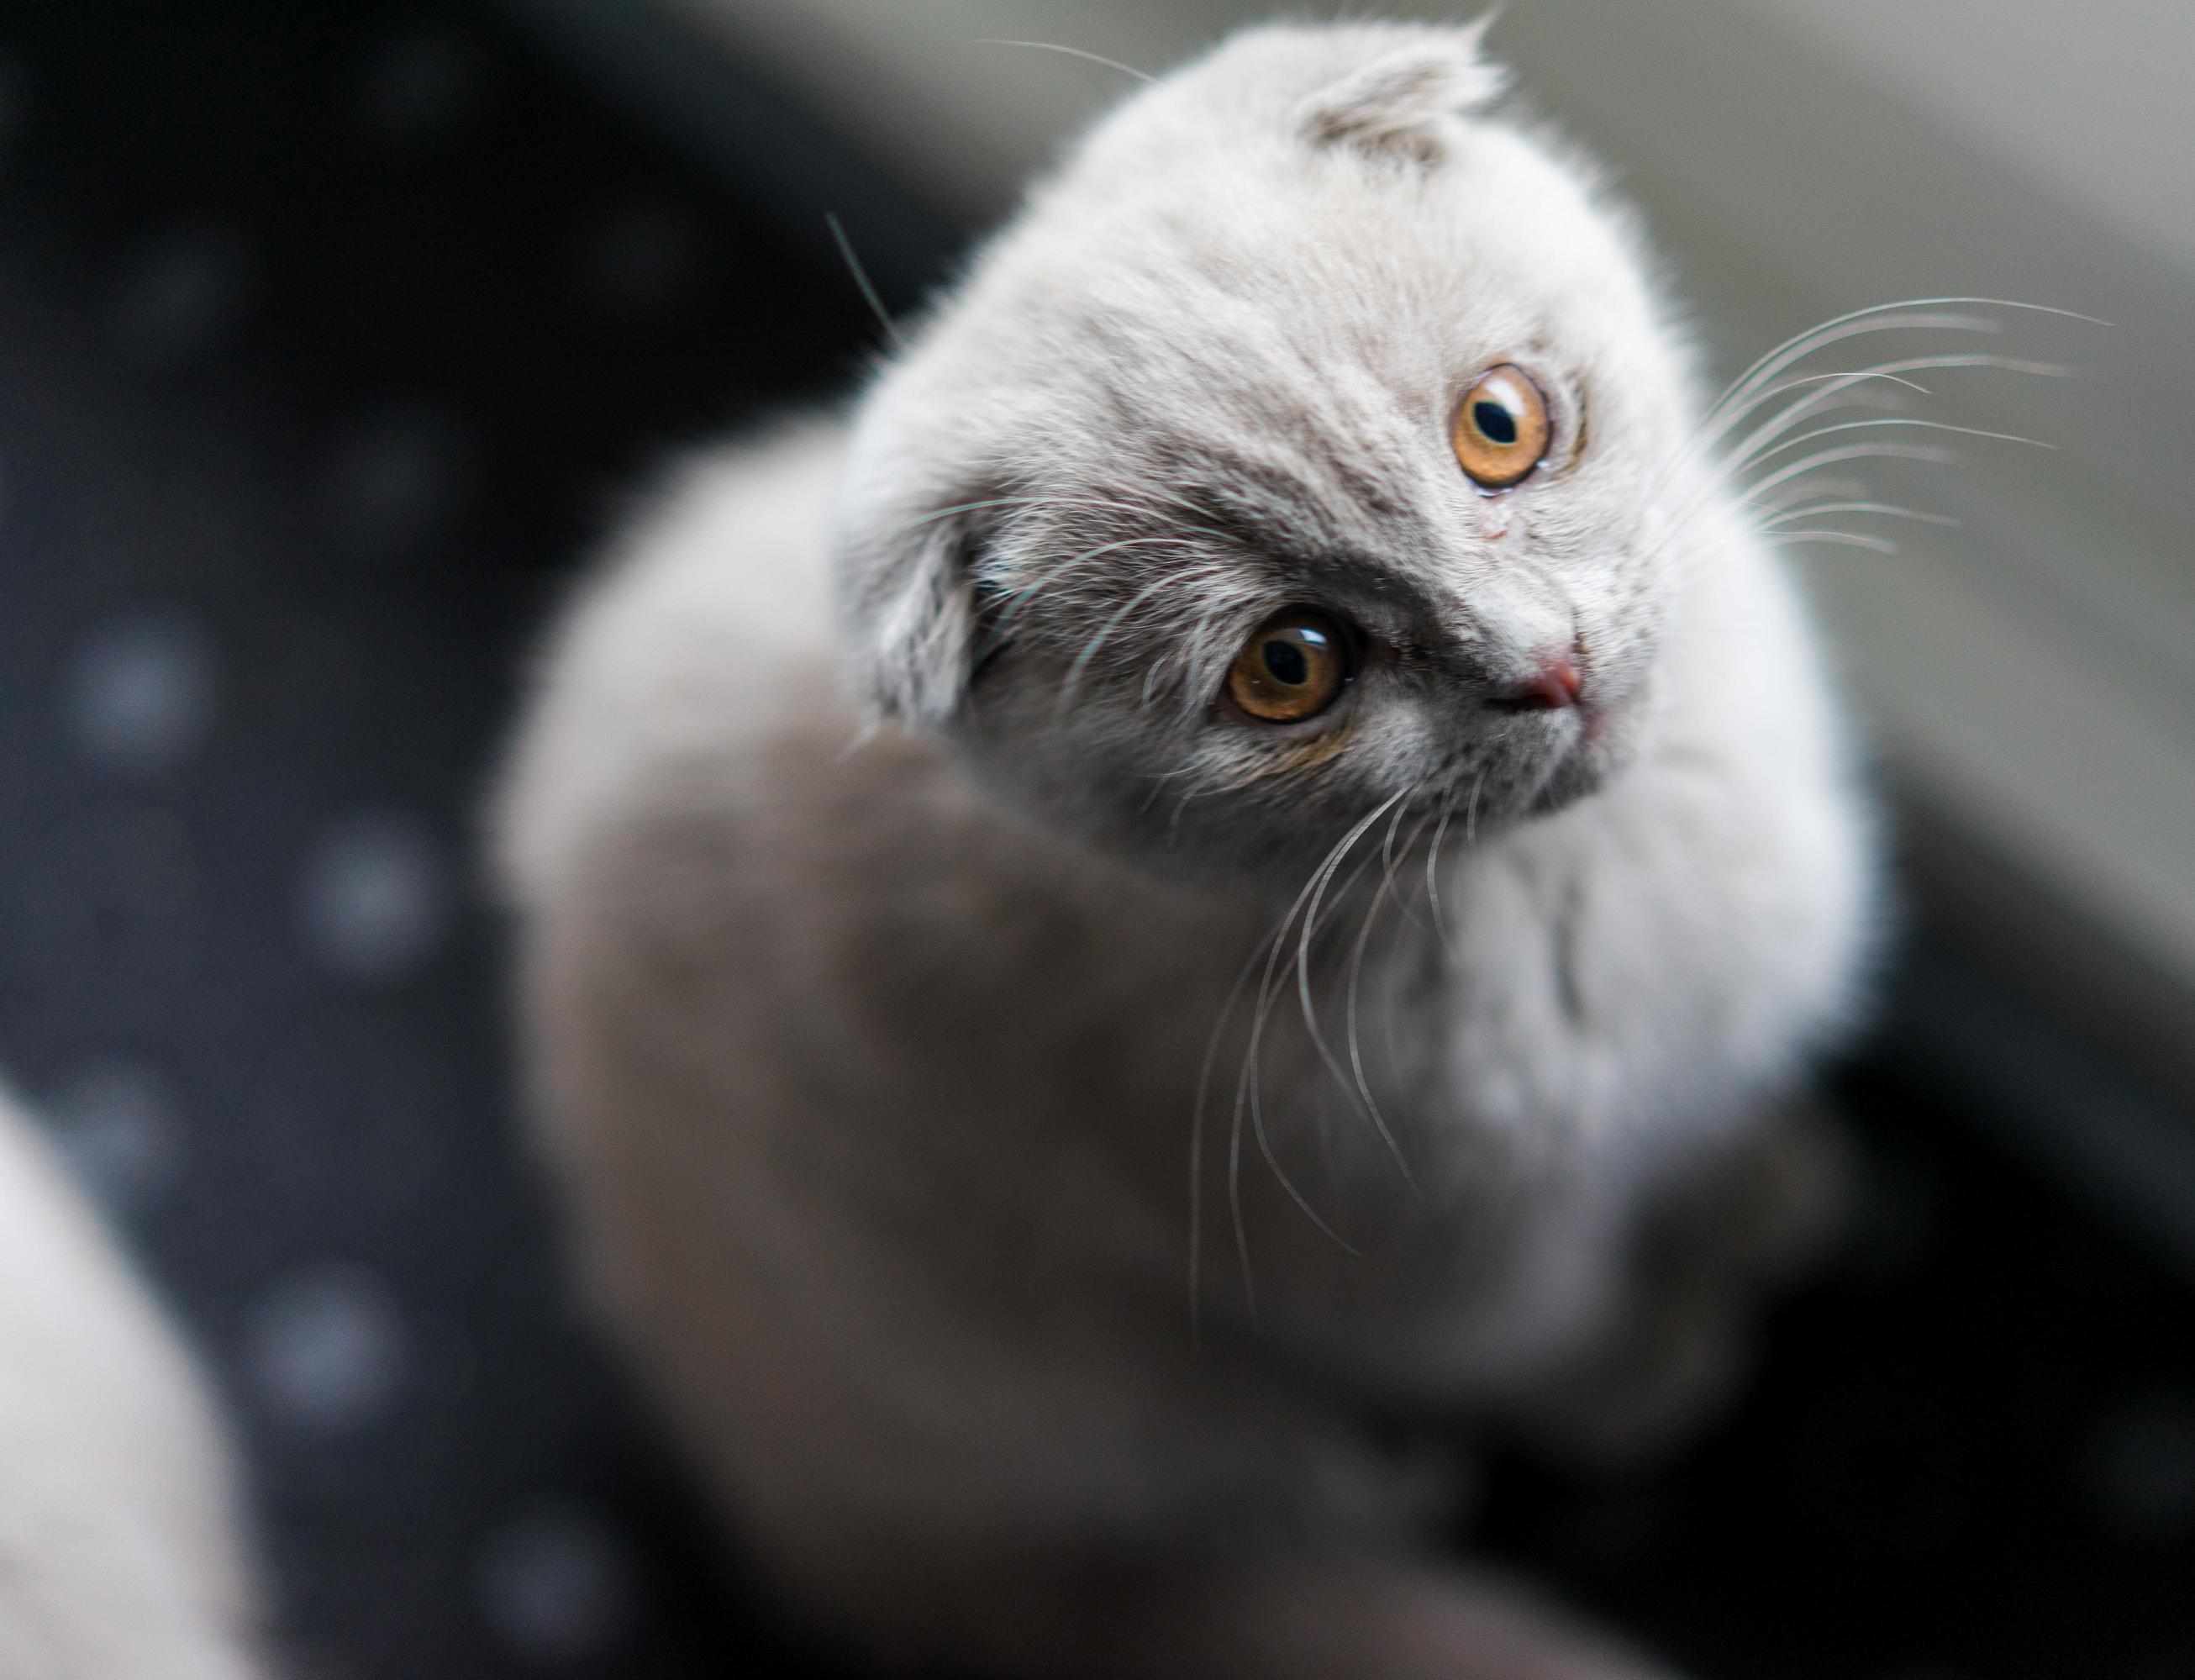 This is snow, 13 weeks old scottish fold